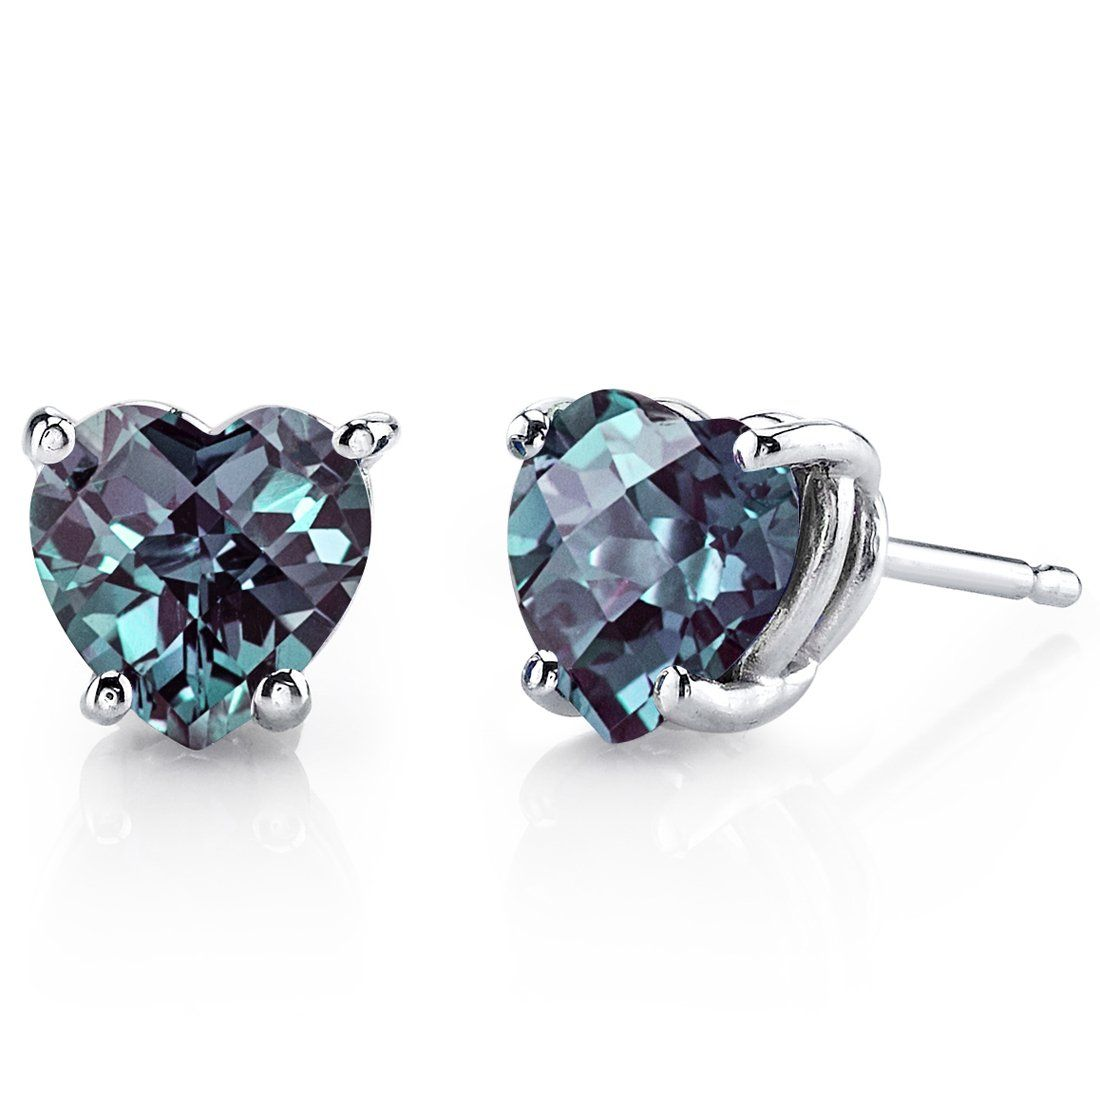 v laura p ashley width alexandrite flower created diamond earrings stud